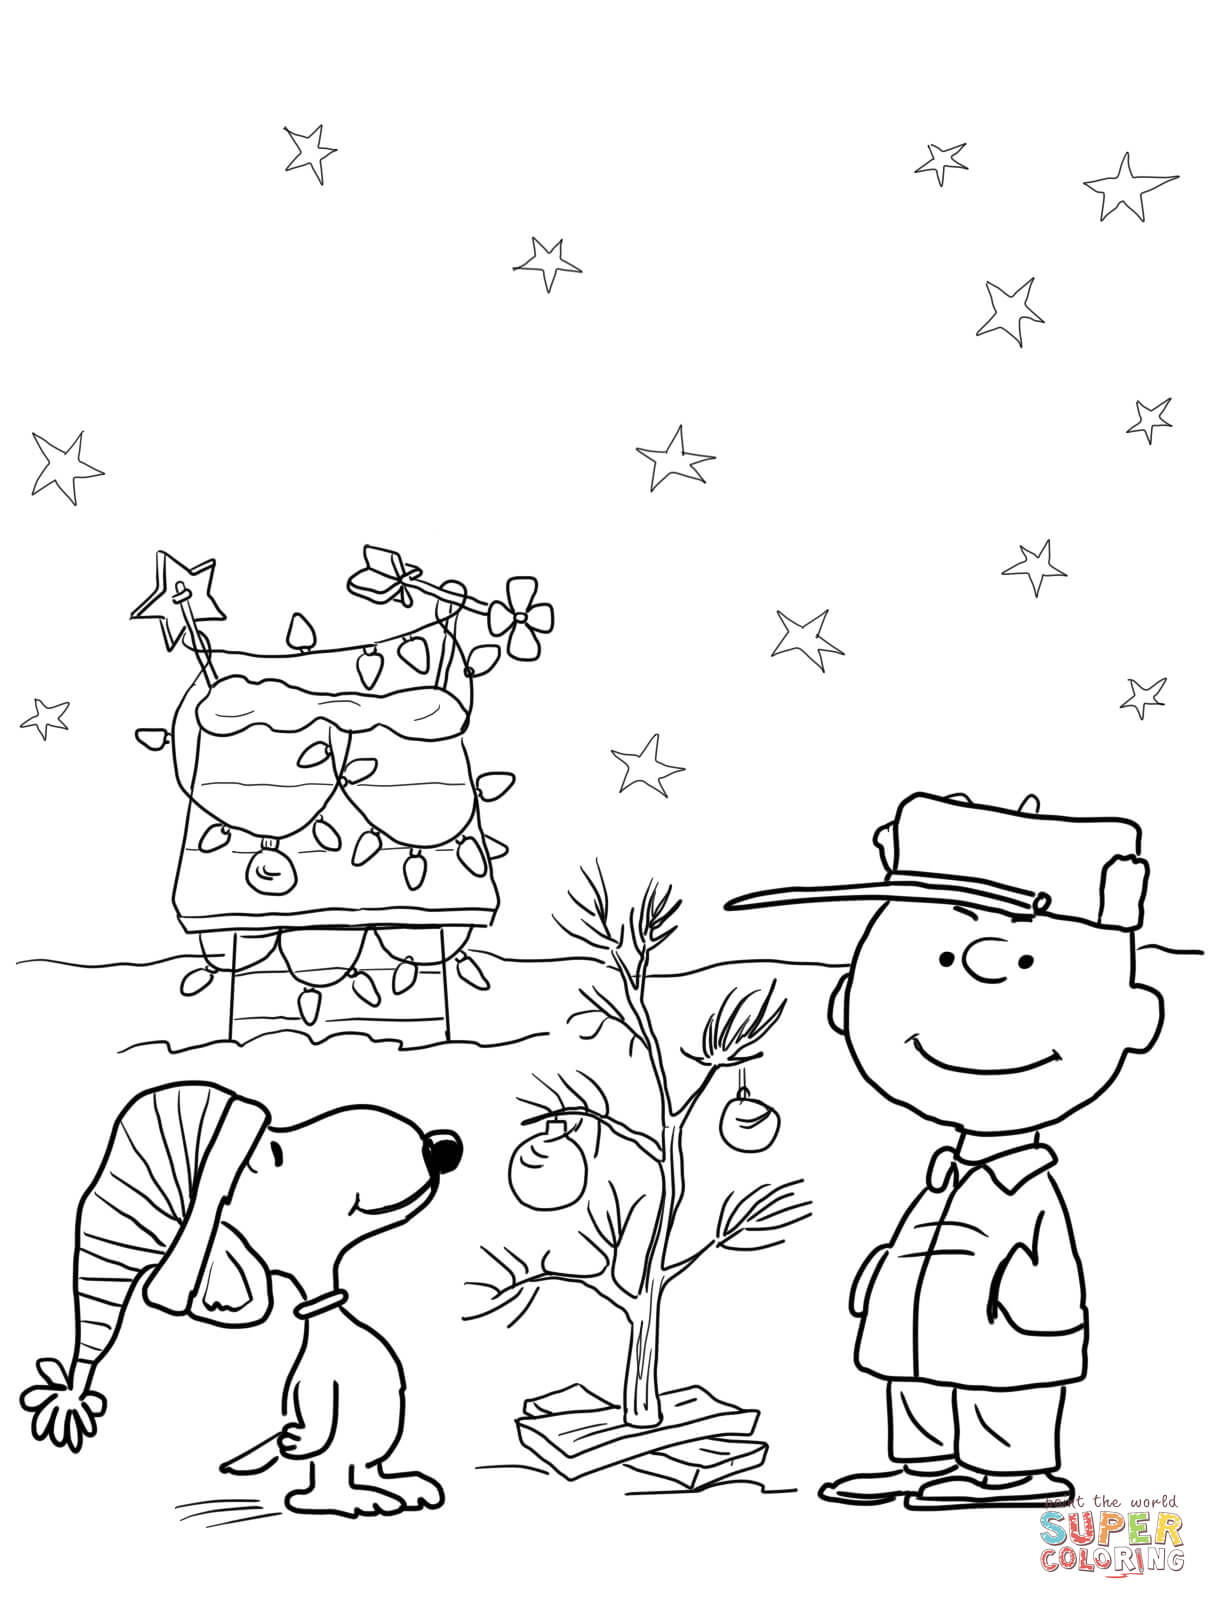 peanuts christmas coloring pages peanuts xmas coloring and activity book charles m pages coloring peanuts christmas